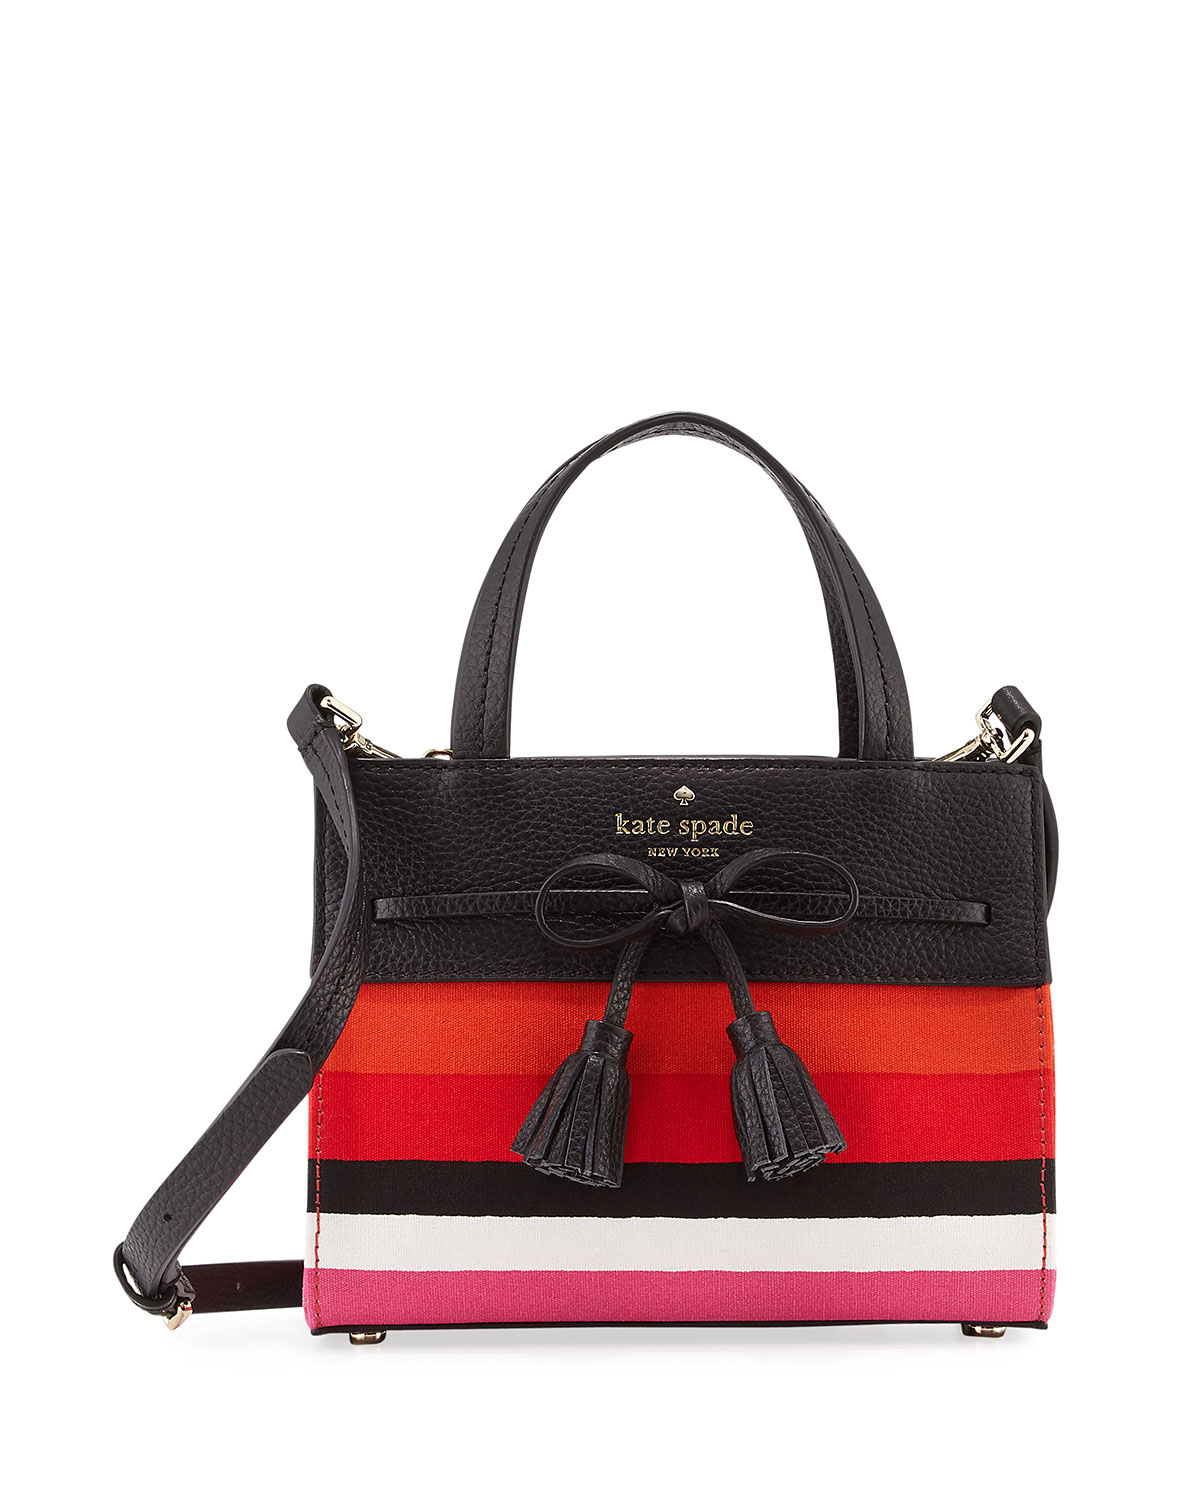 f9651f968fa1 kate spade new york hayes street isobel mini striped bag, pink/multi ...